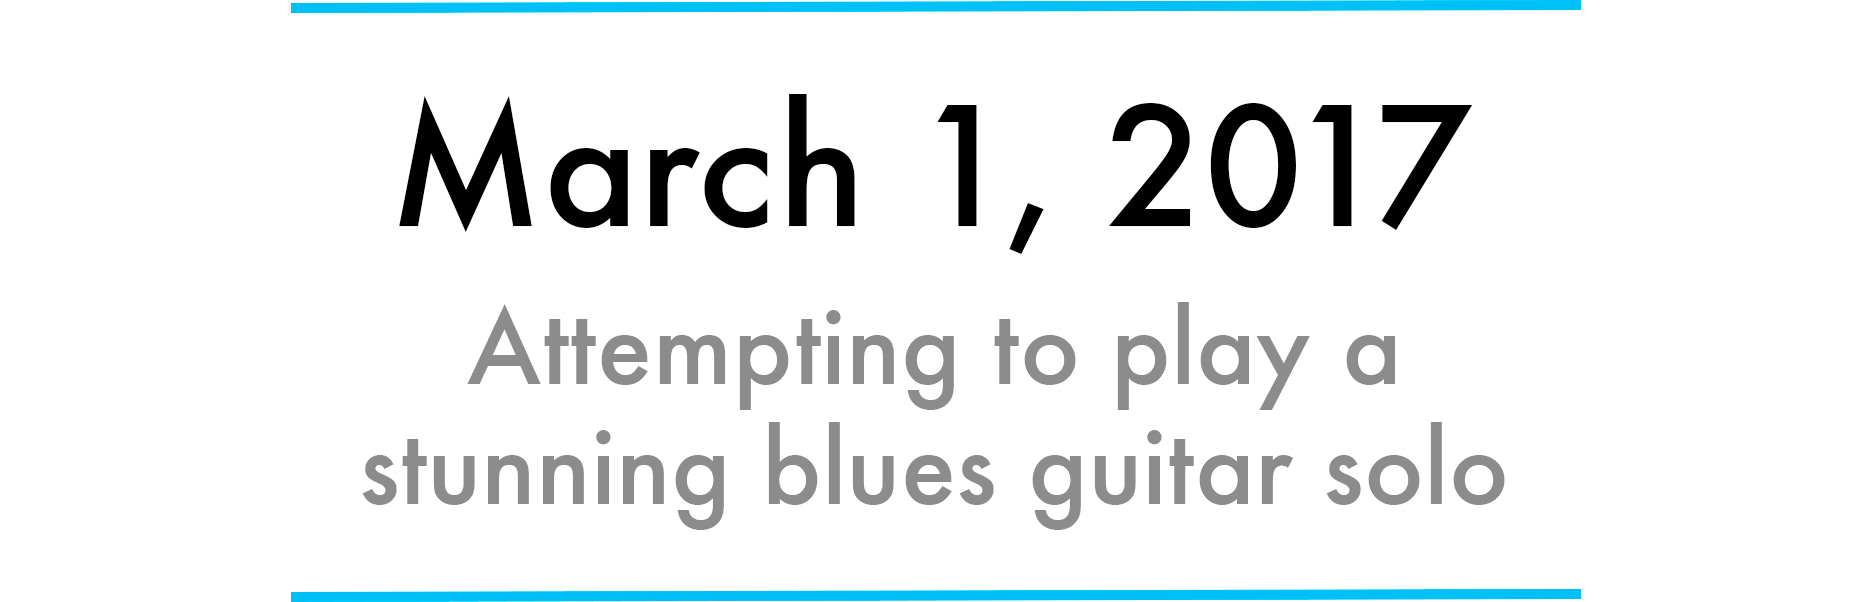 How to become a master of improvisational blues guitar in